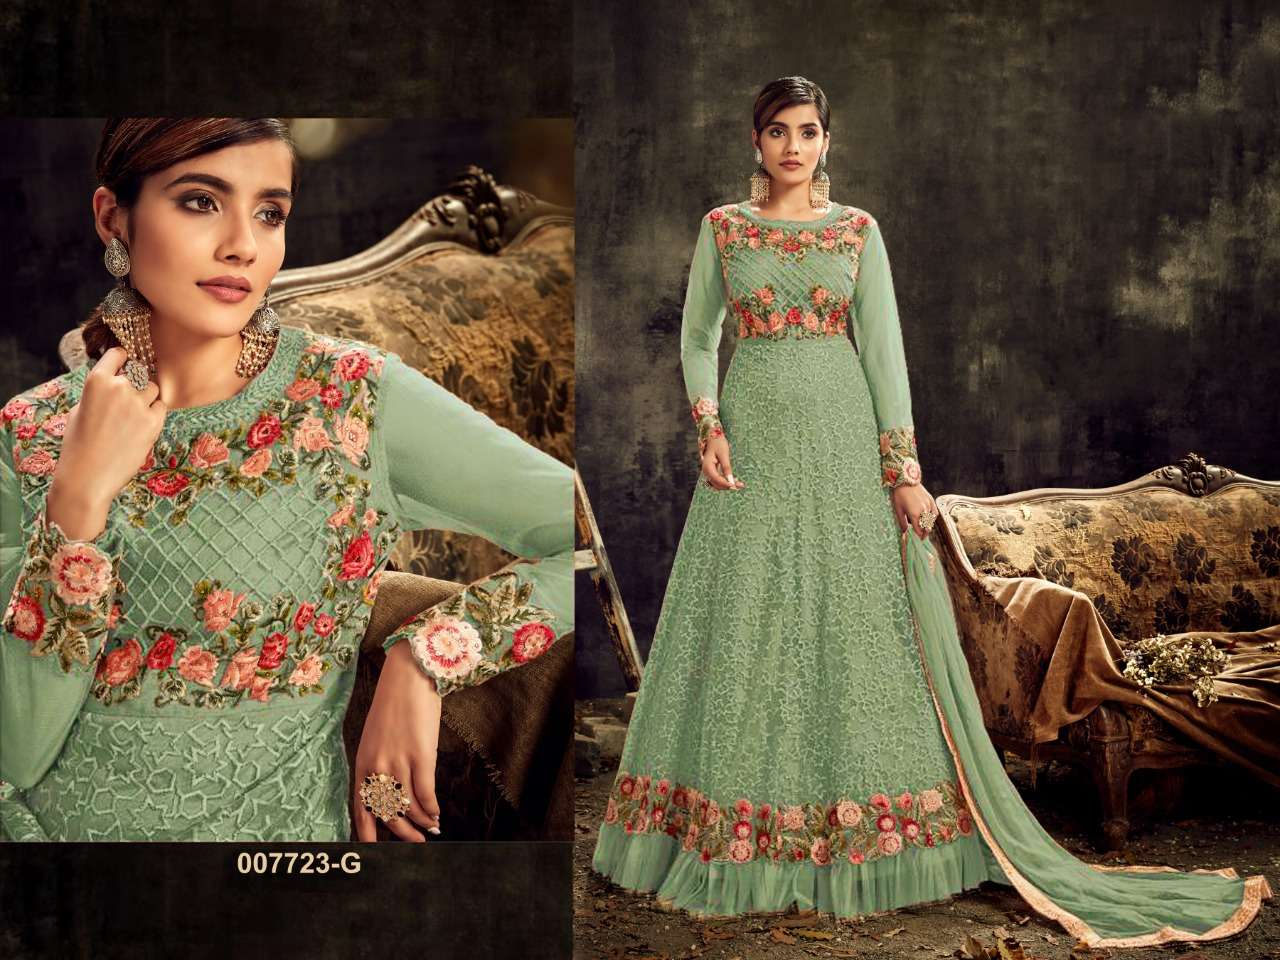 HOTLADYY 7723 DESIGNER HEAVY NET WITH EMBROIDERY WORK UNSTITCHED GOWNS IN SINGLES